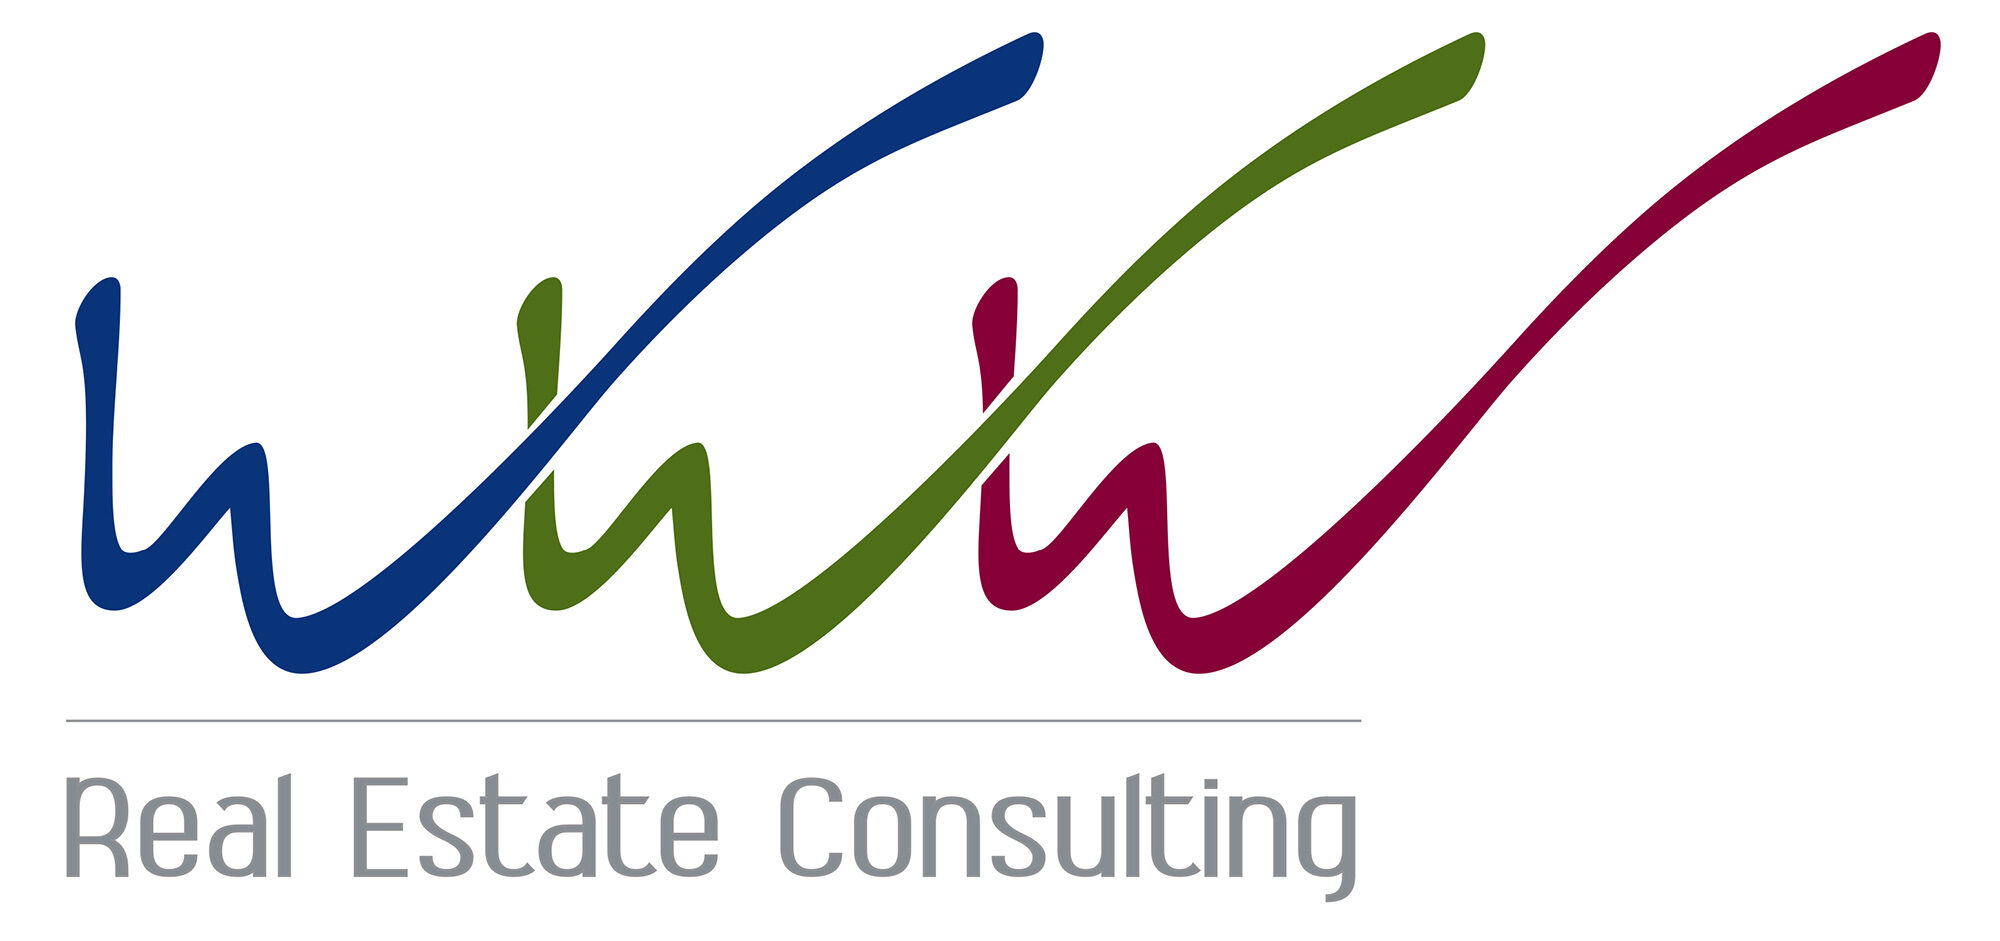 WWW Real Estate Consulting